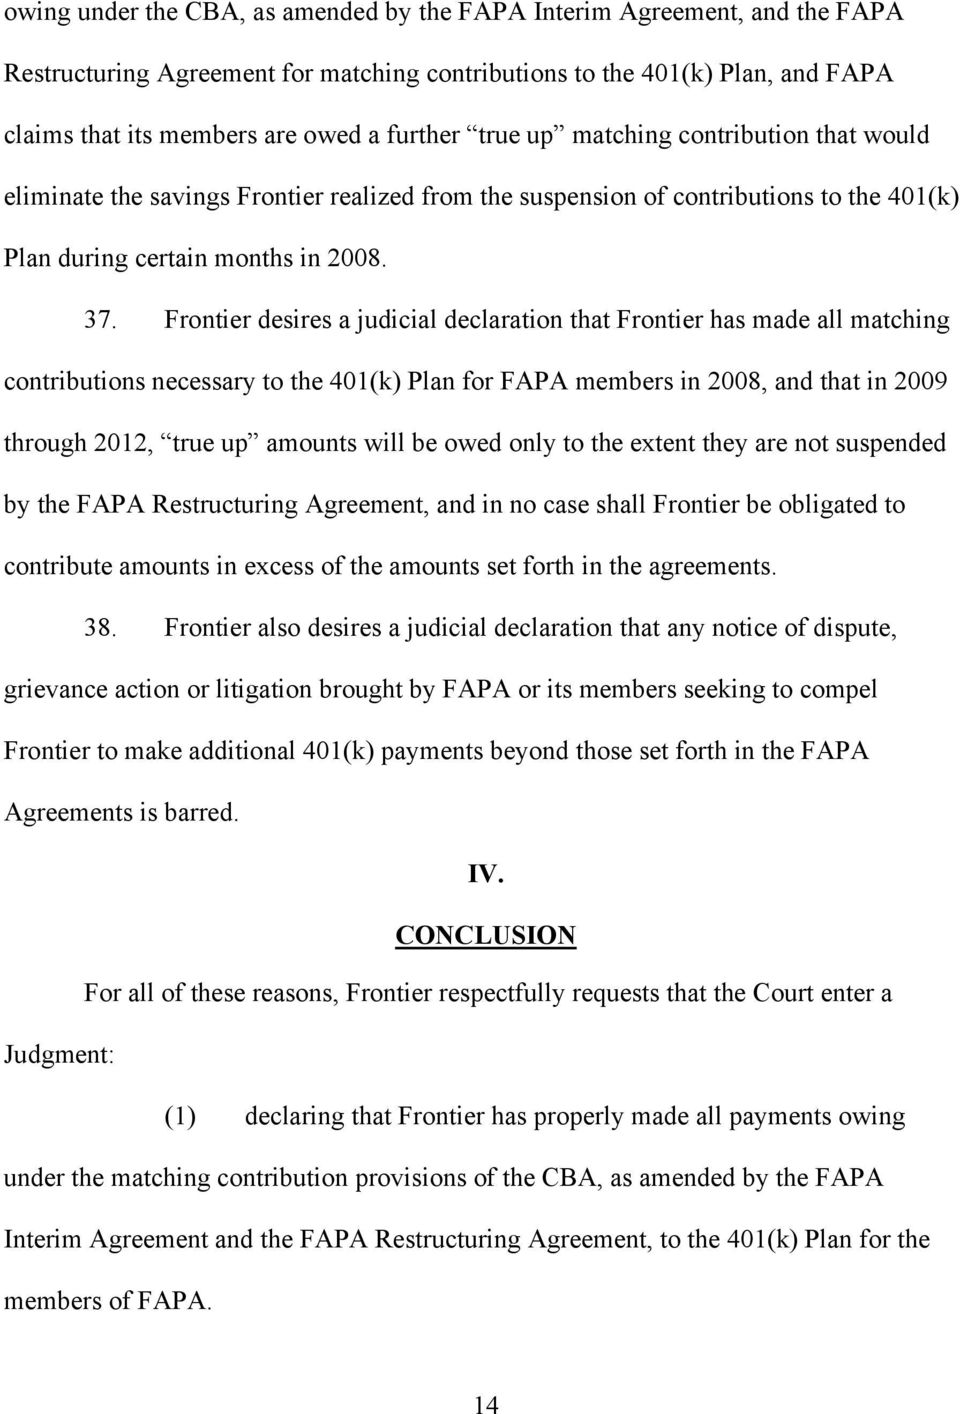 Frontier desires a judicial declaration that Frontier has made all matching contributions necessary to the 401(k) Plan for FAPA members in 2008, and that in 2009 through 2012, true up amounts will be